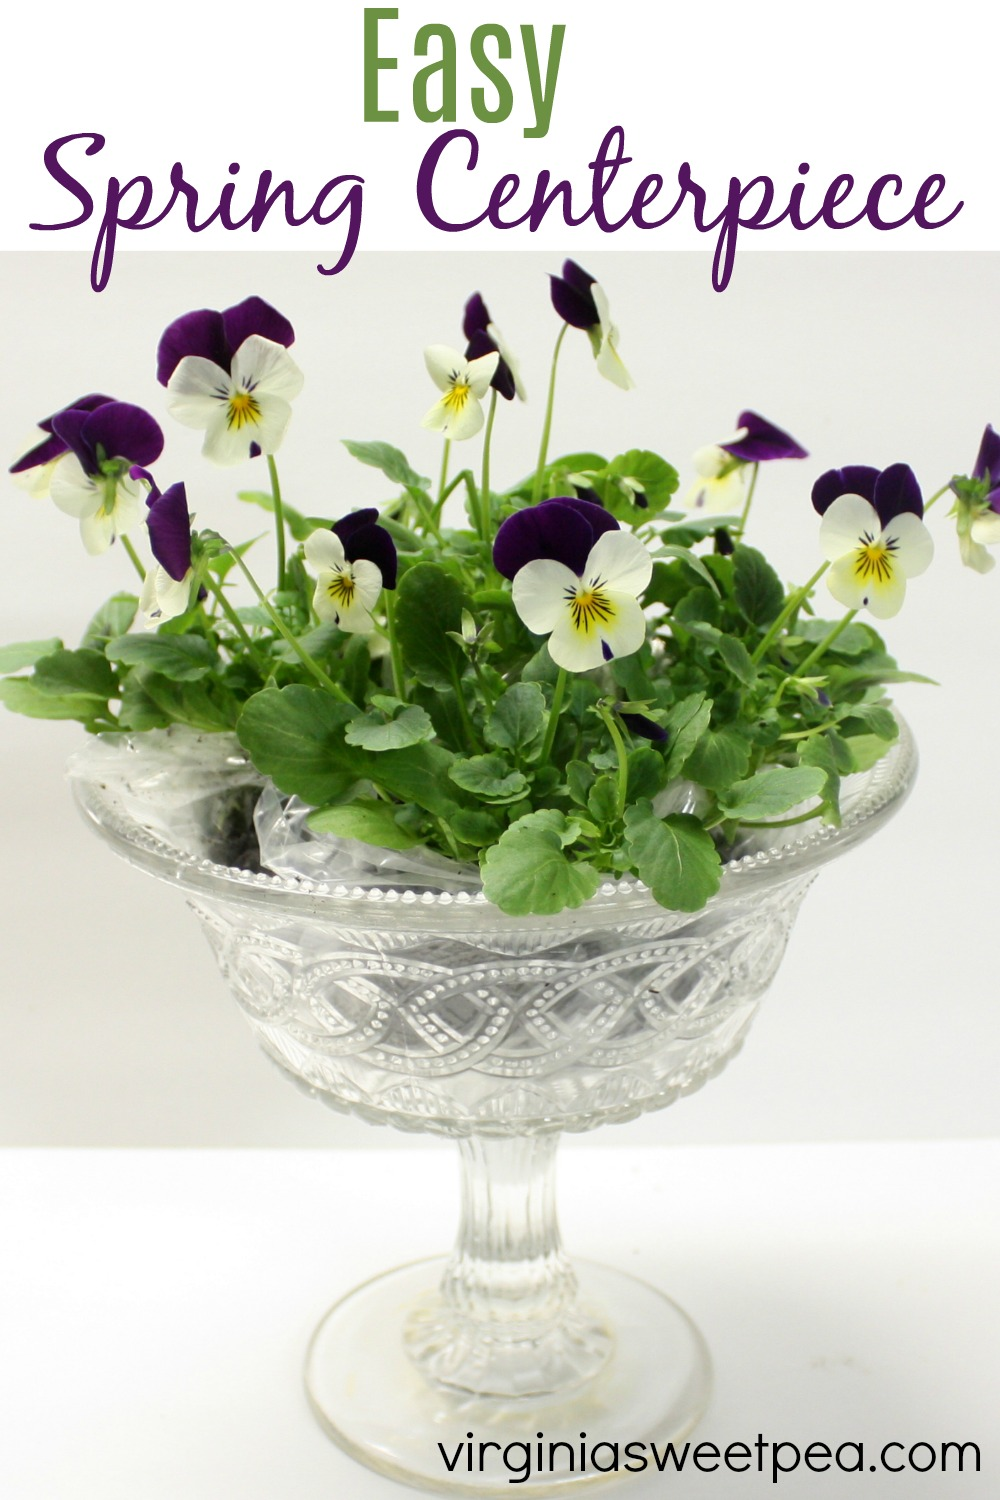 Easy Spring Centerpiece - Make a quick and easy spring centerpiece with pansies or violas and a compote bowl. #springcenterpiece #springideas #spring decor via @spaula